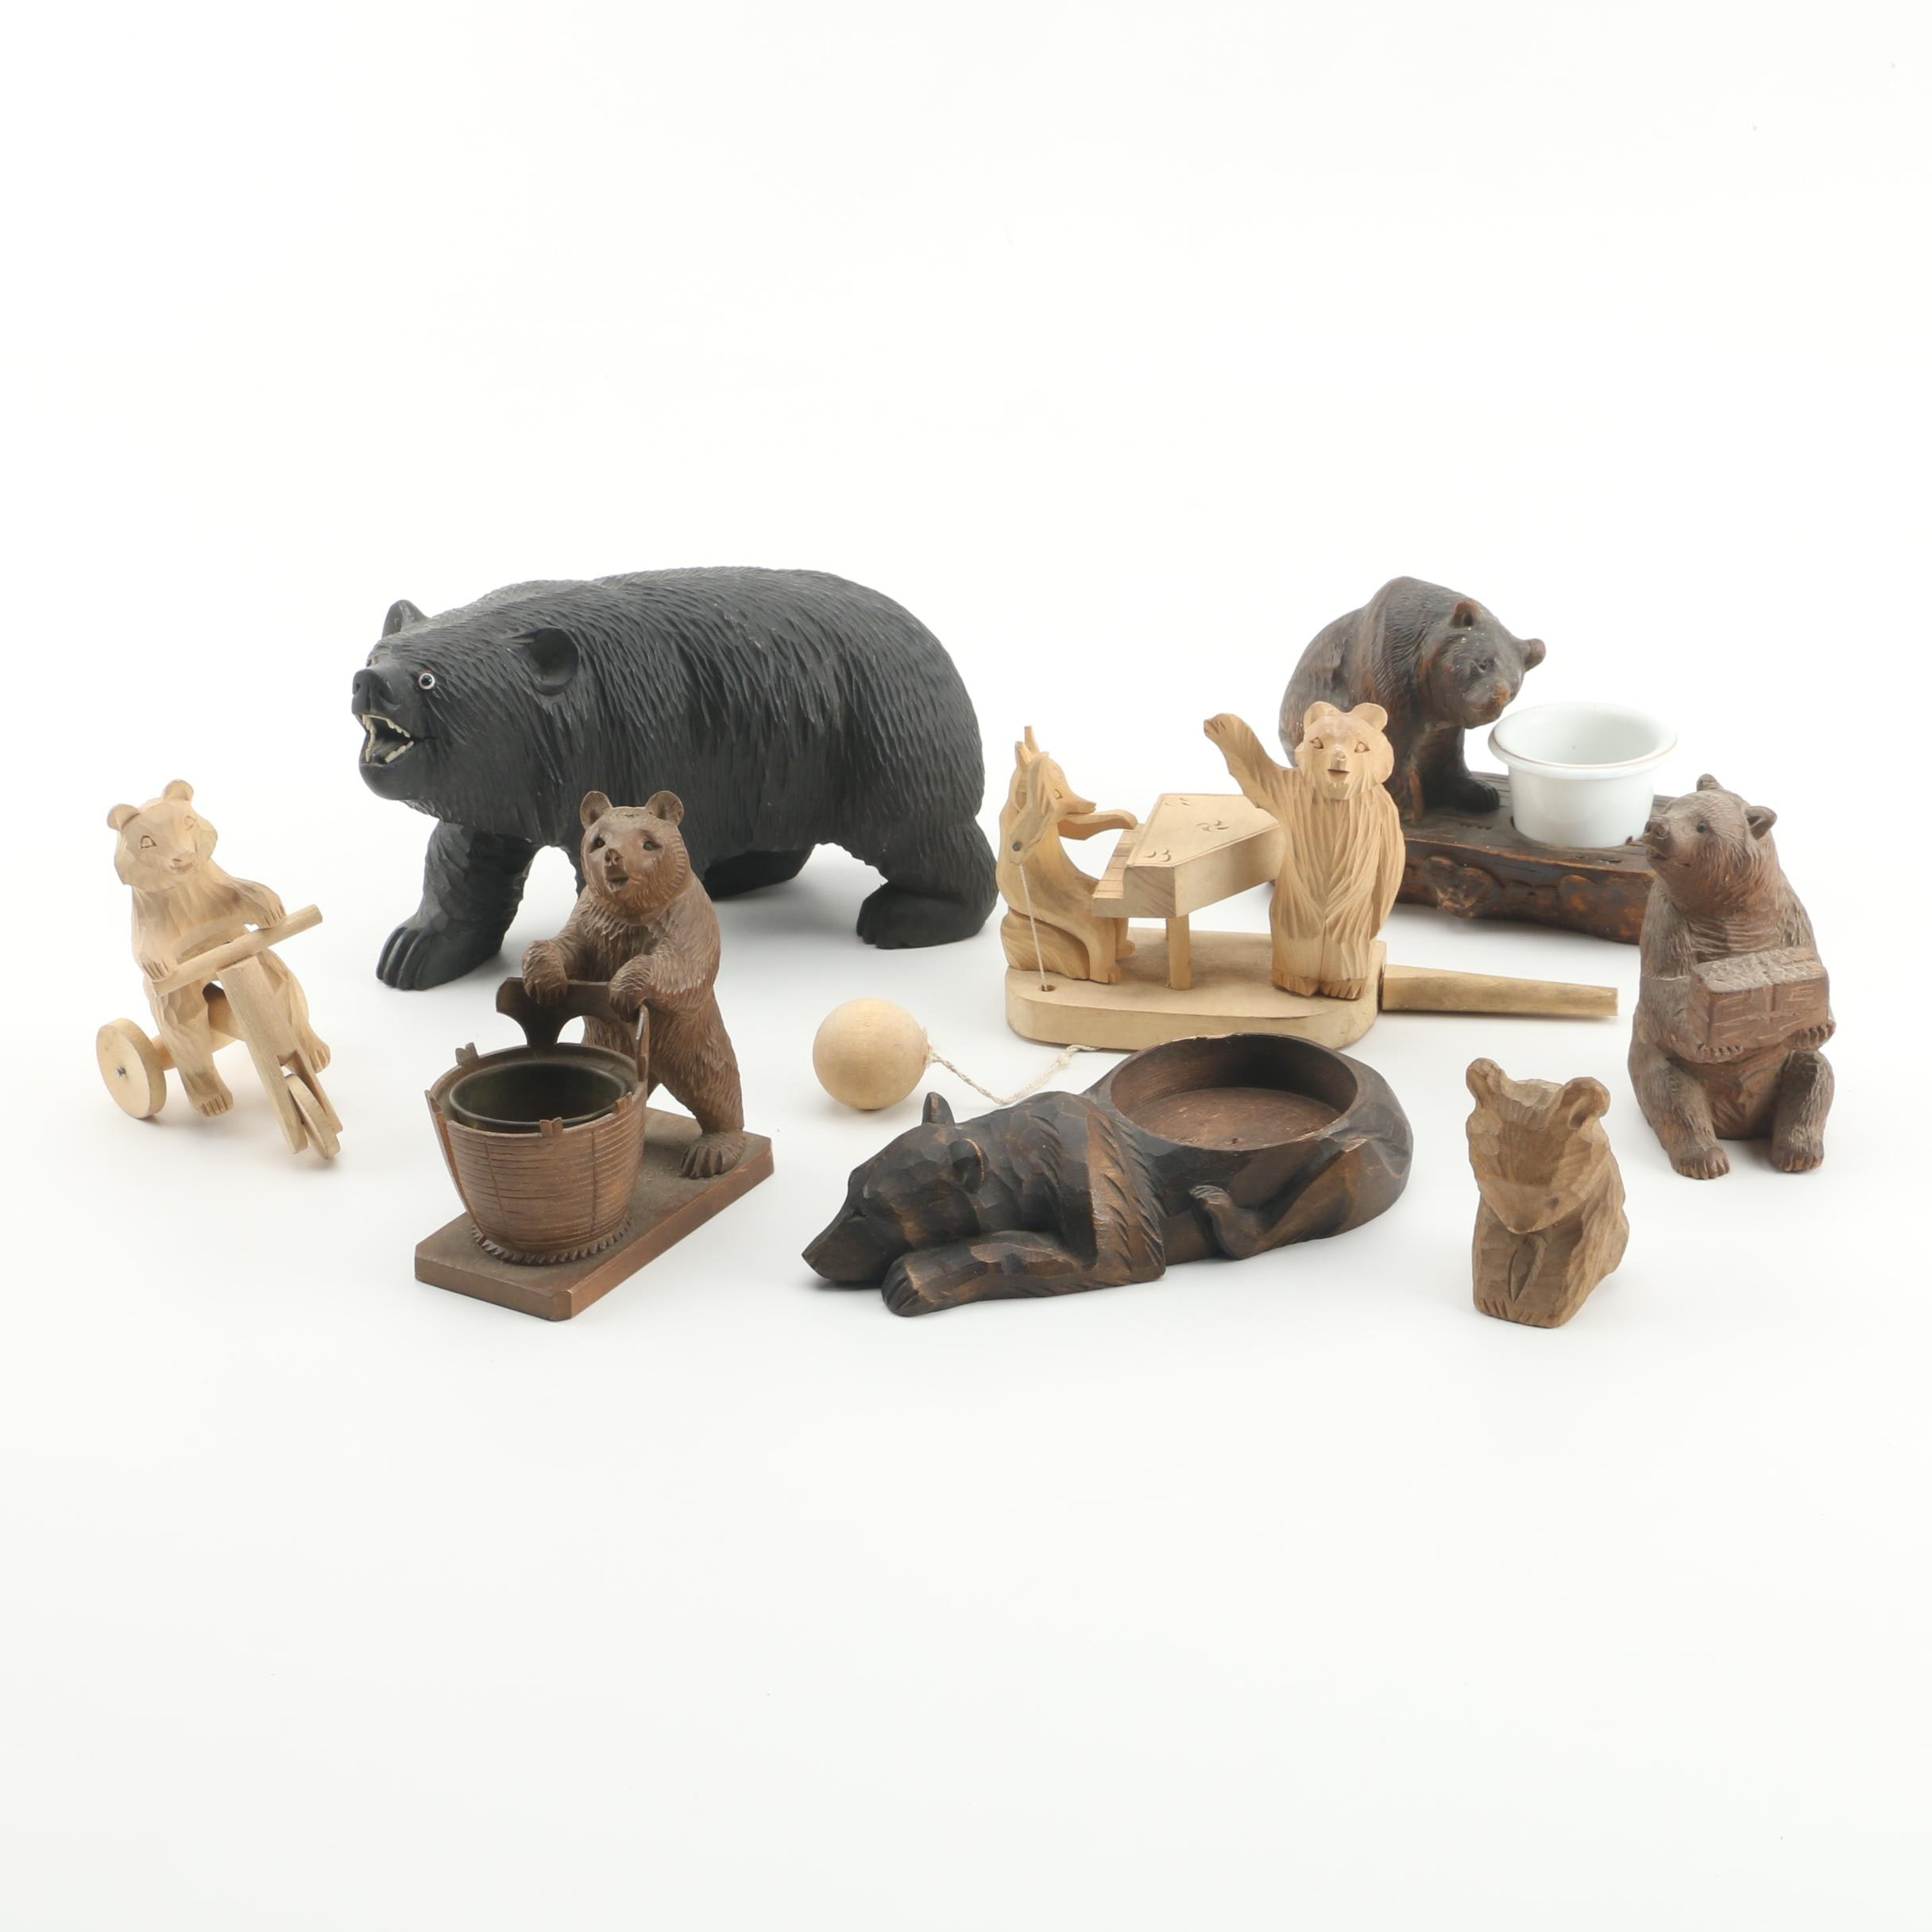 Hand Carved Wooden Bear Figurines and Toys